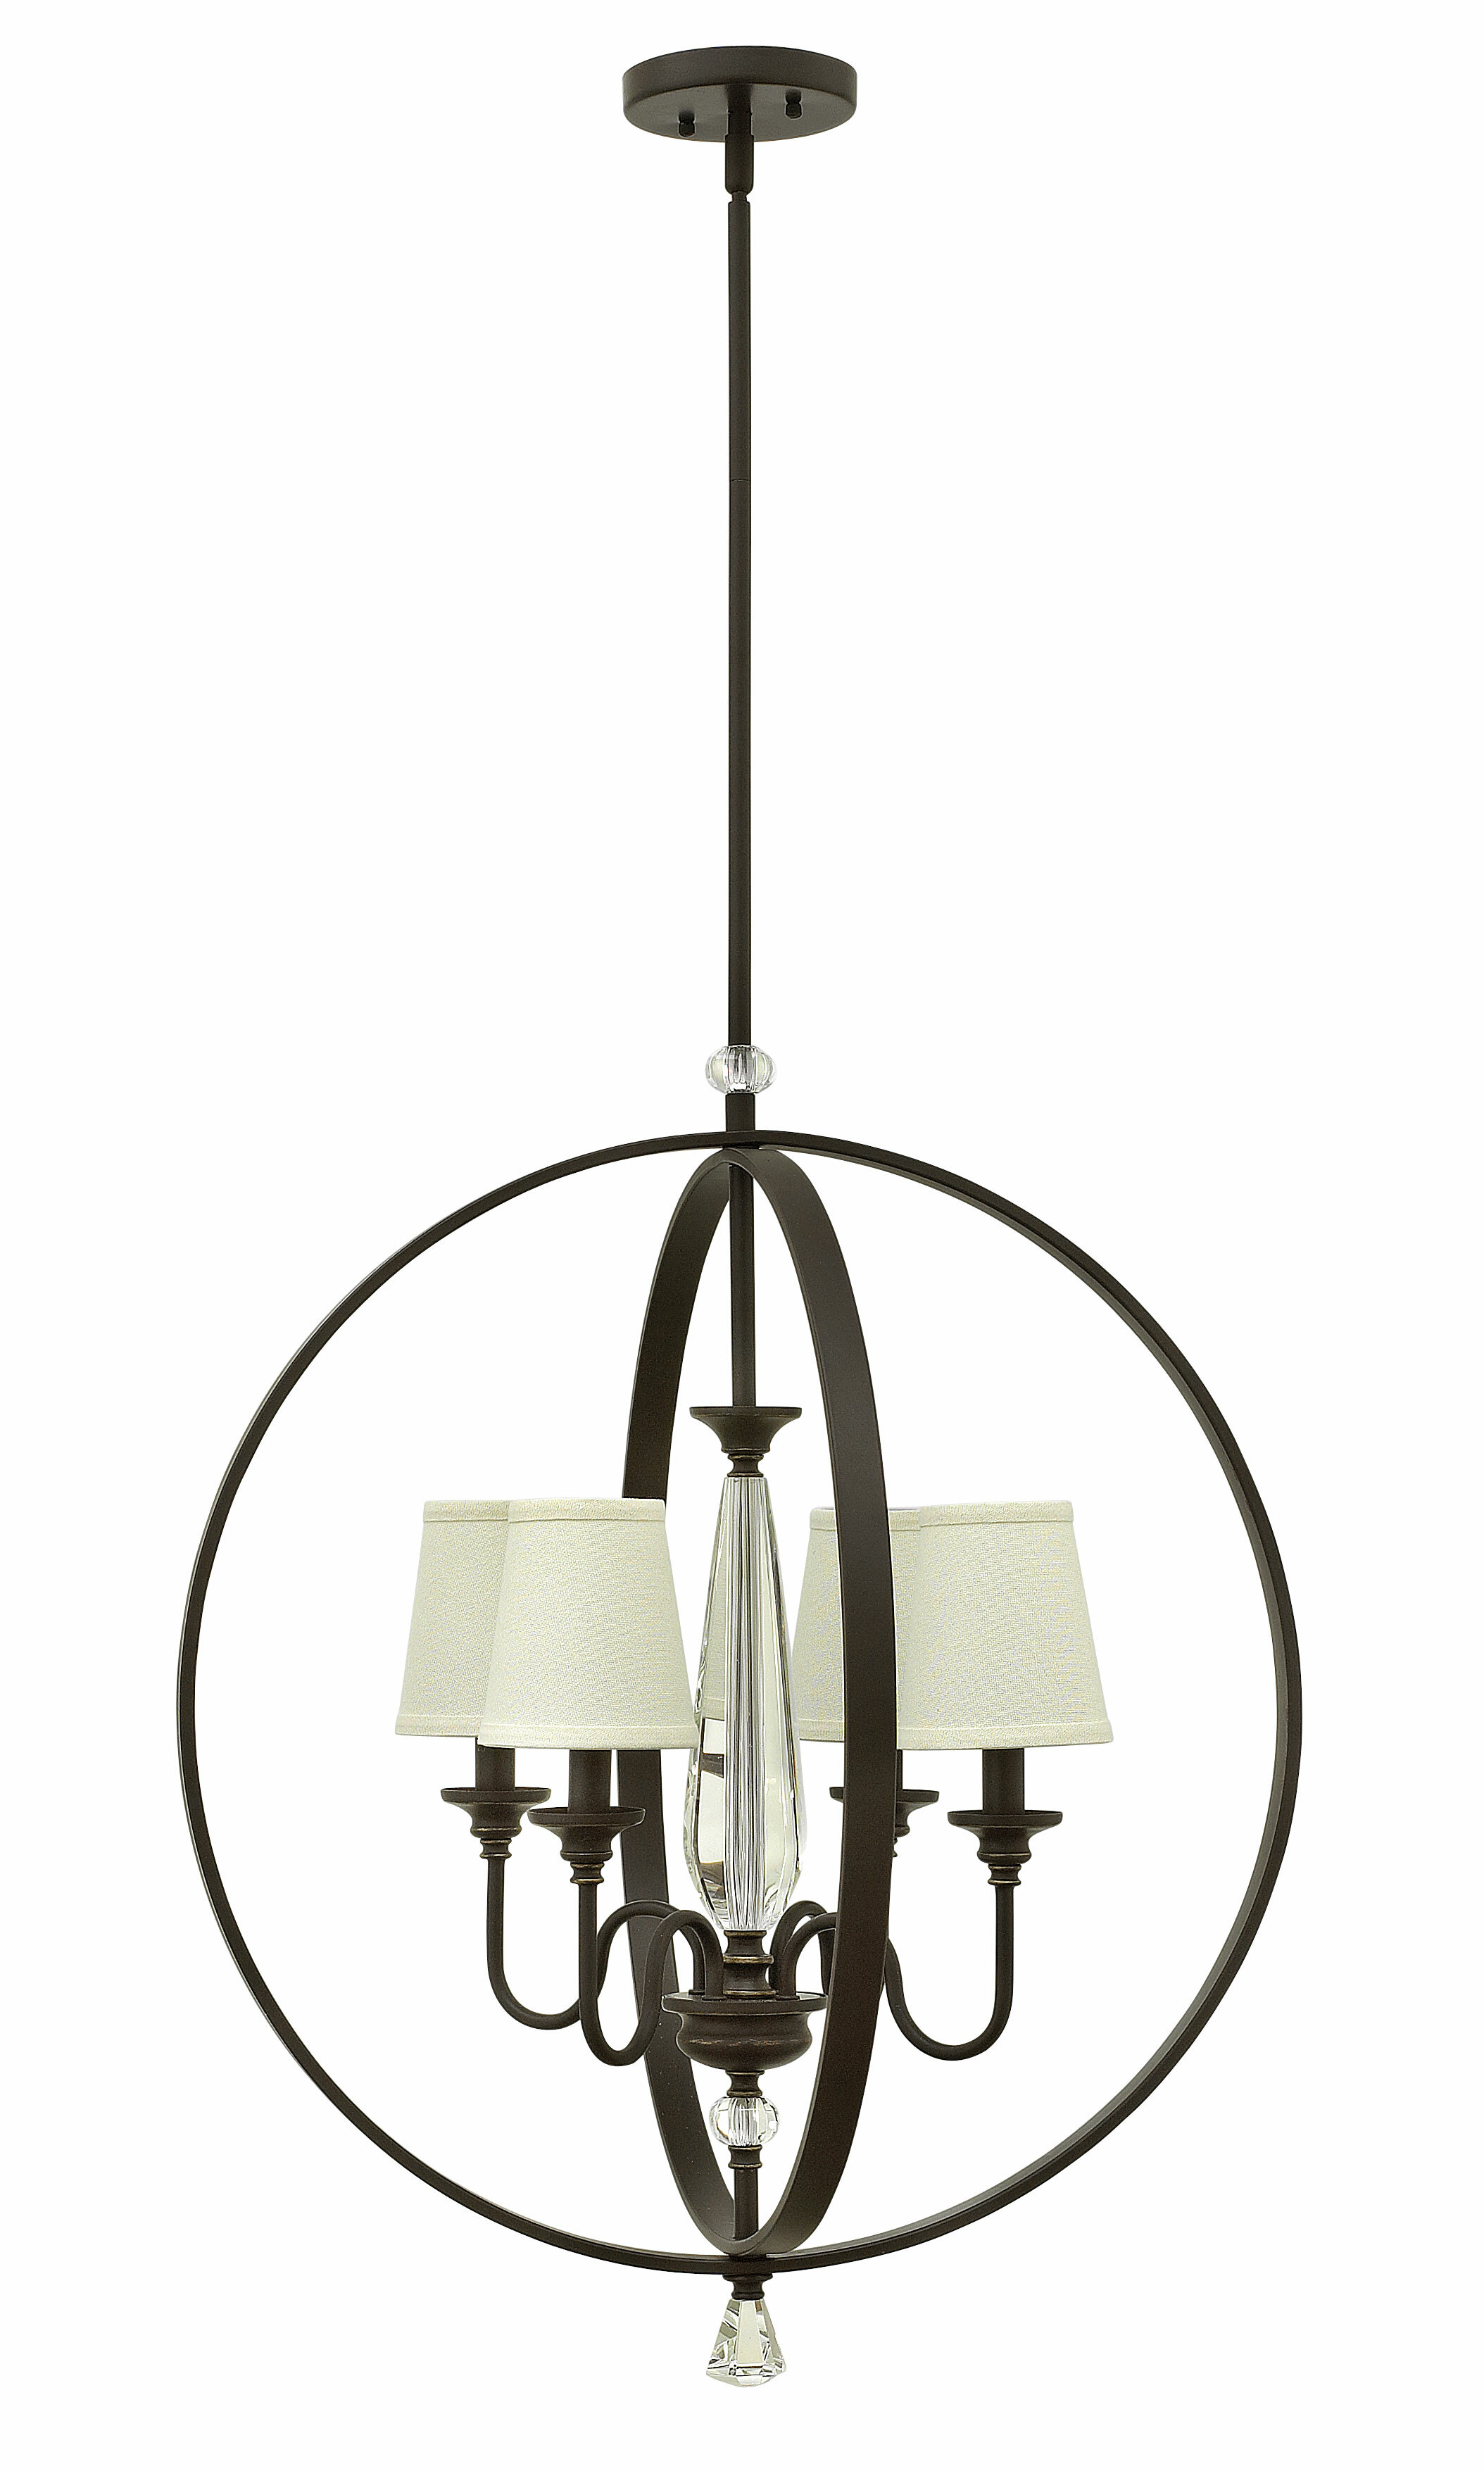 House Of Hampton Sheilah 4 Light Shaded Globe Chandelier With Crystal Accents Wayfair